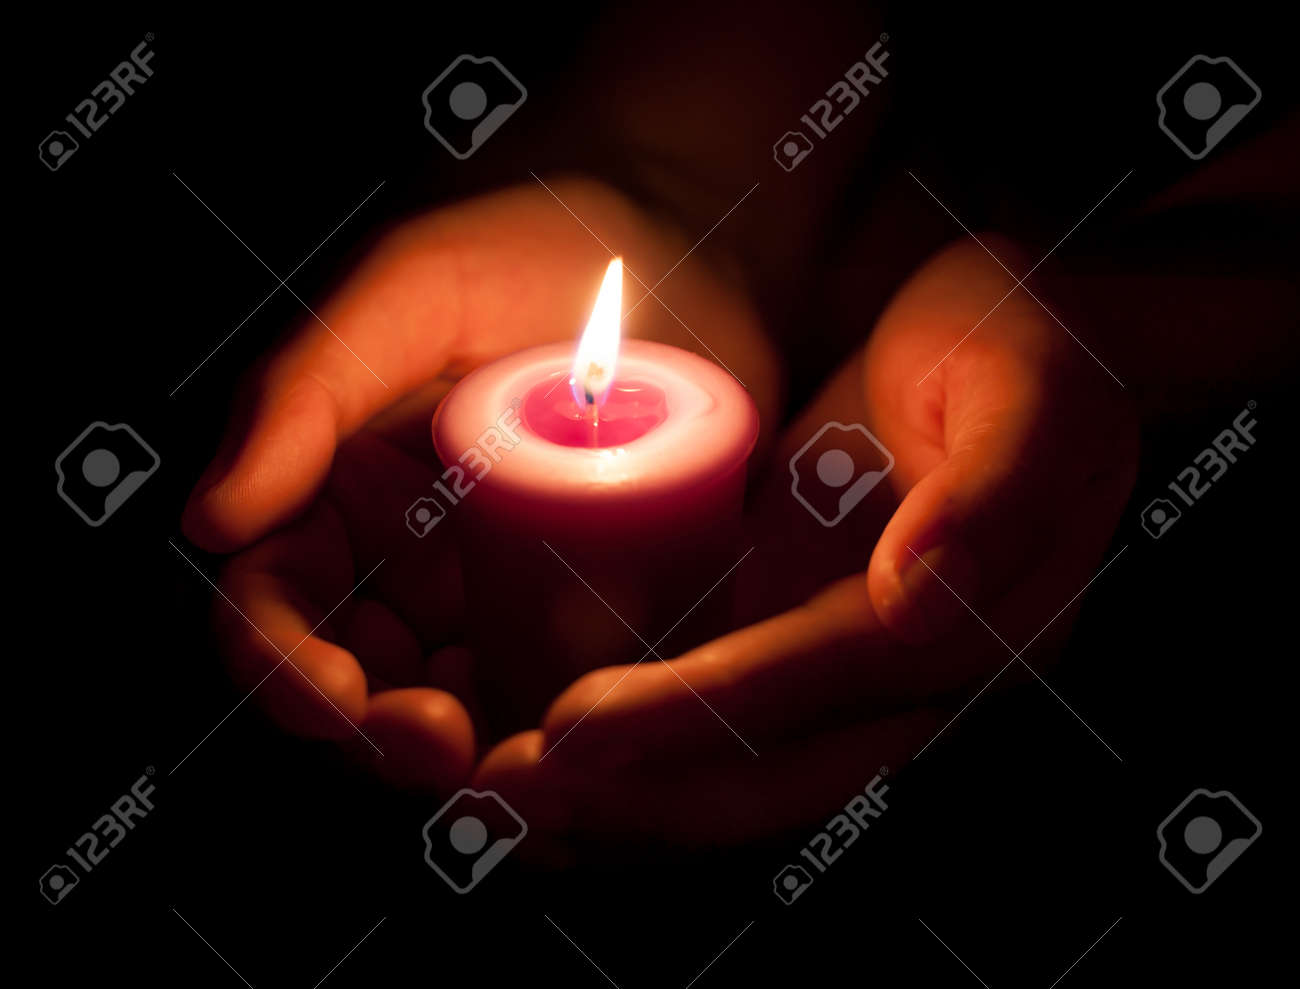 Hand Holding A Burning Candle In Dark Stock Photo, Picture And ... for Holding Candle In The Dark  59nar